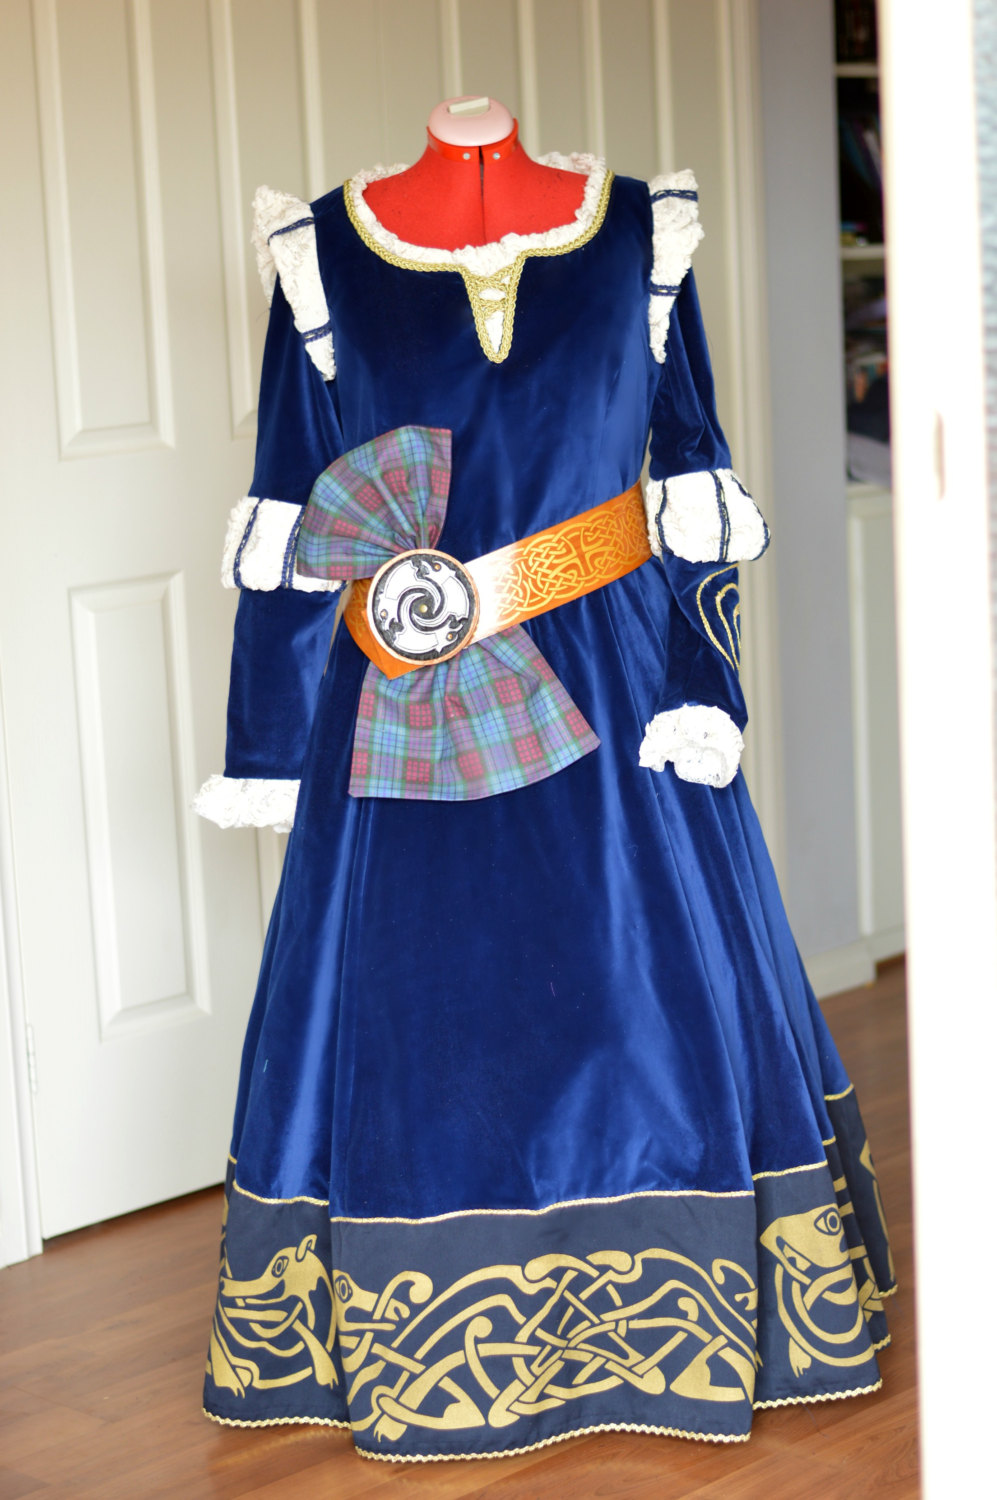 Merida / Scottish Princess, Brave,  Costume Includes Gown ,Cape,  Belt, Buckle and Sash